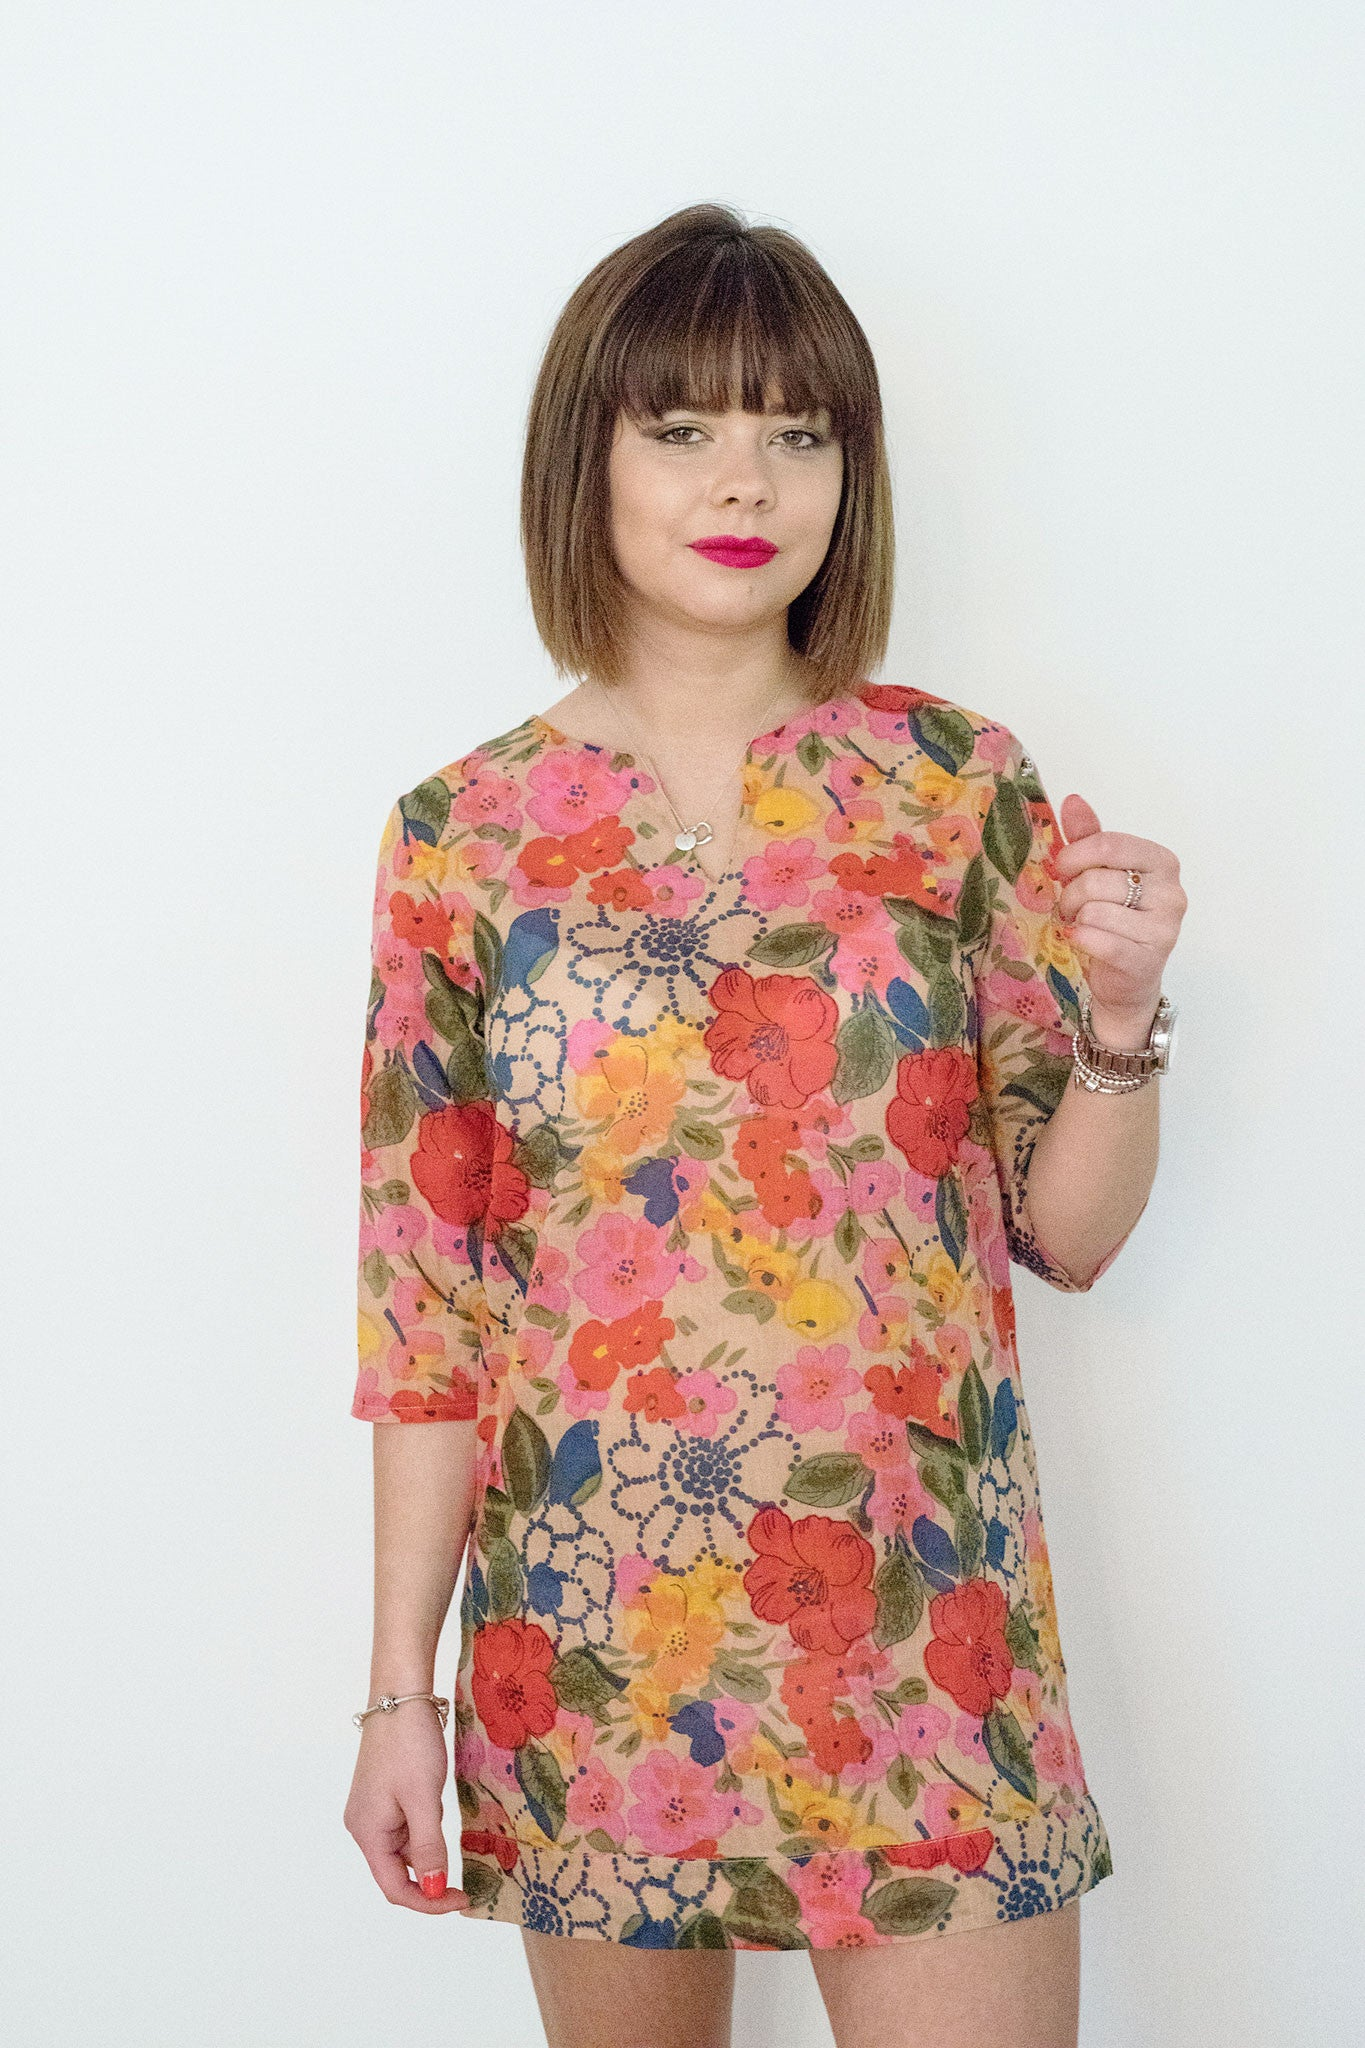 Sketch London Fashion cotton tunic vibrant flower print dress beachwear summer sleeves